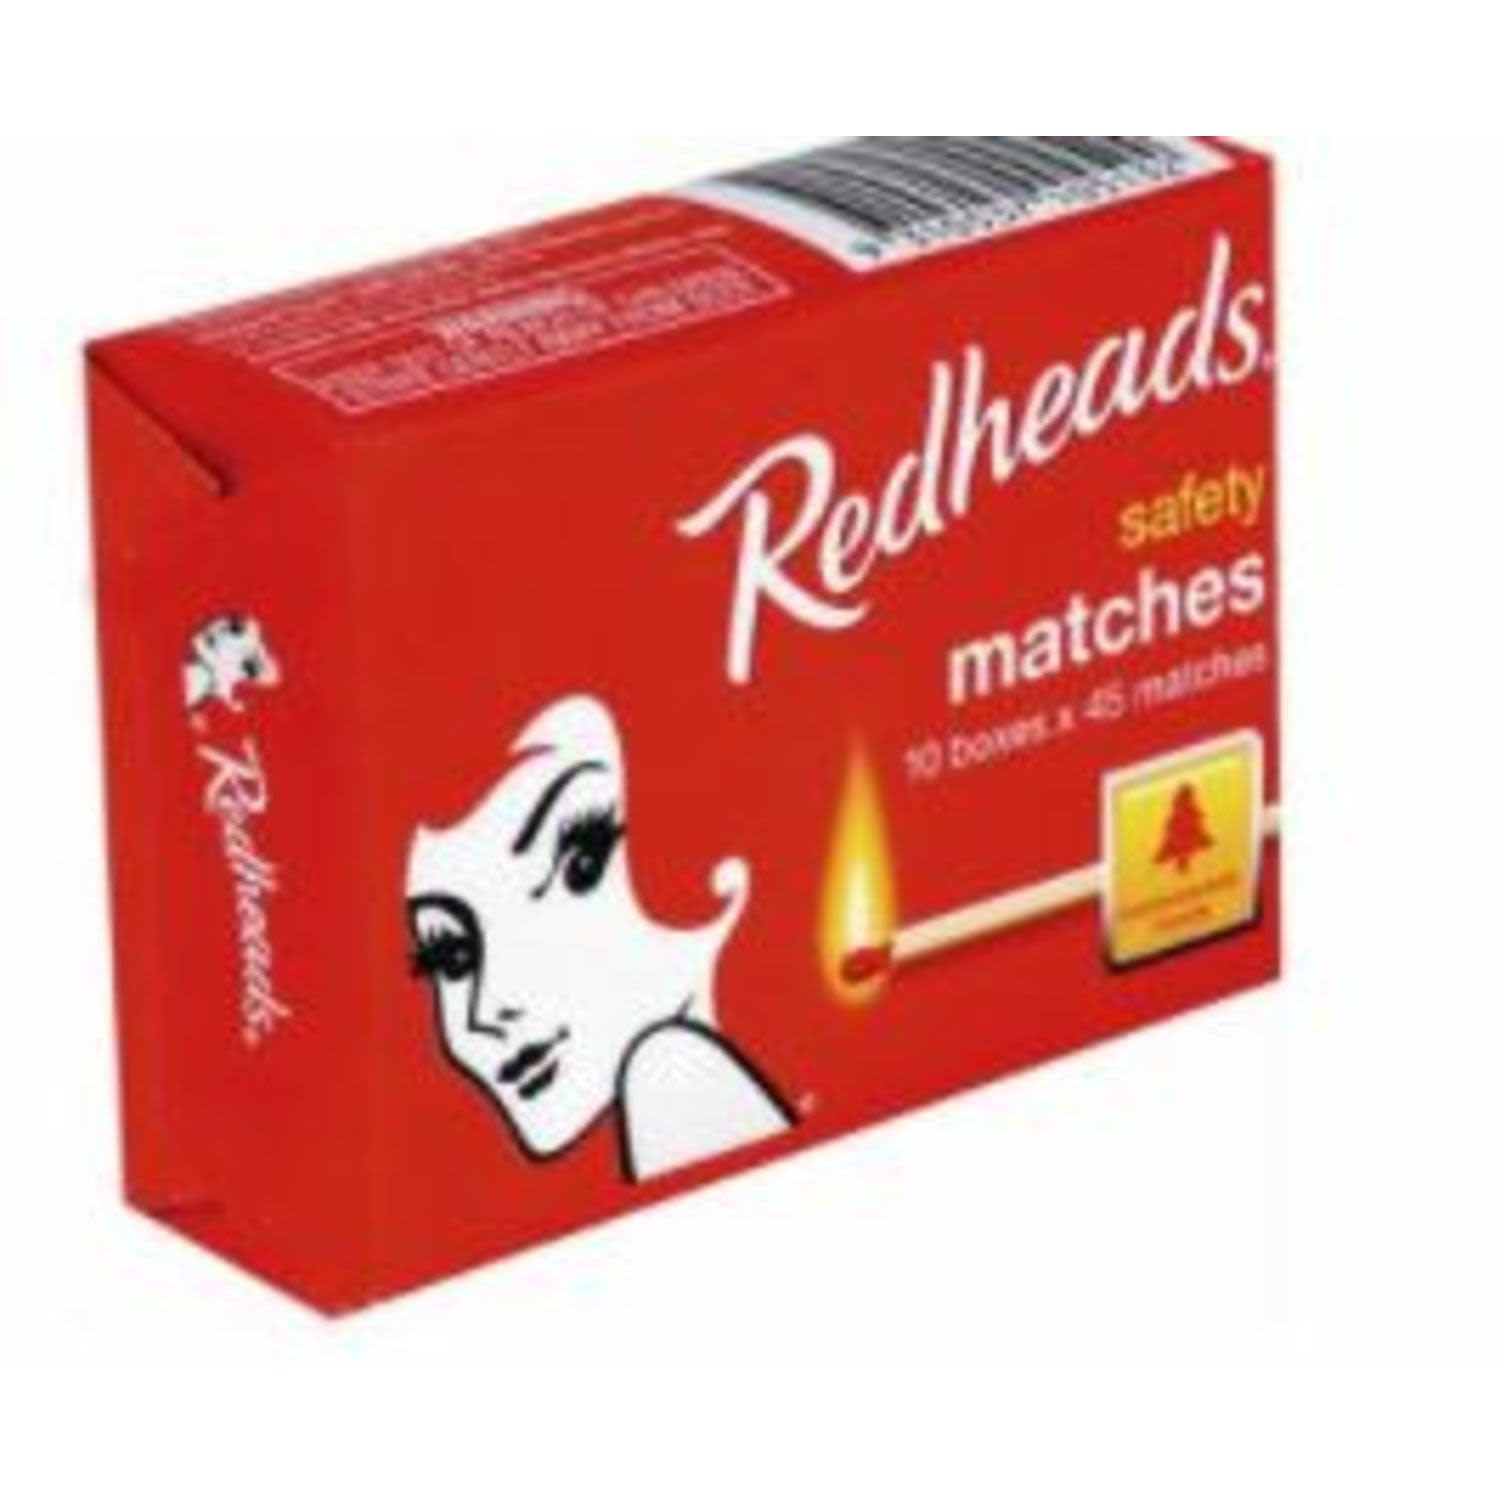 Redheads Matches Safety, 10 Each